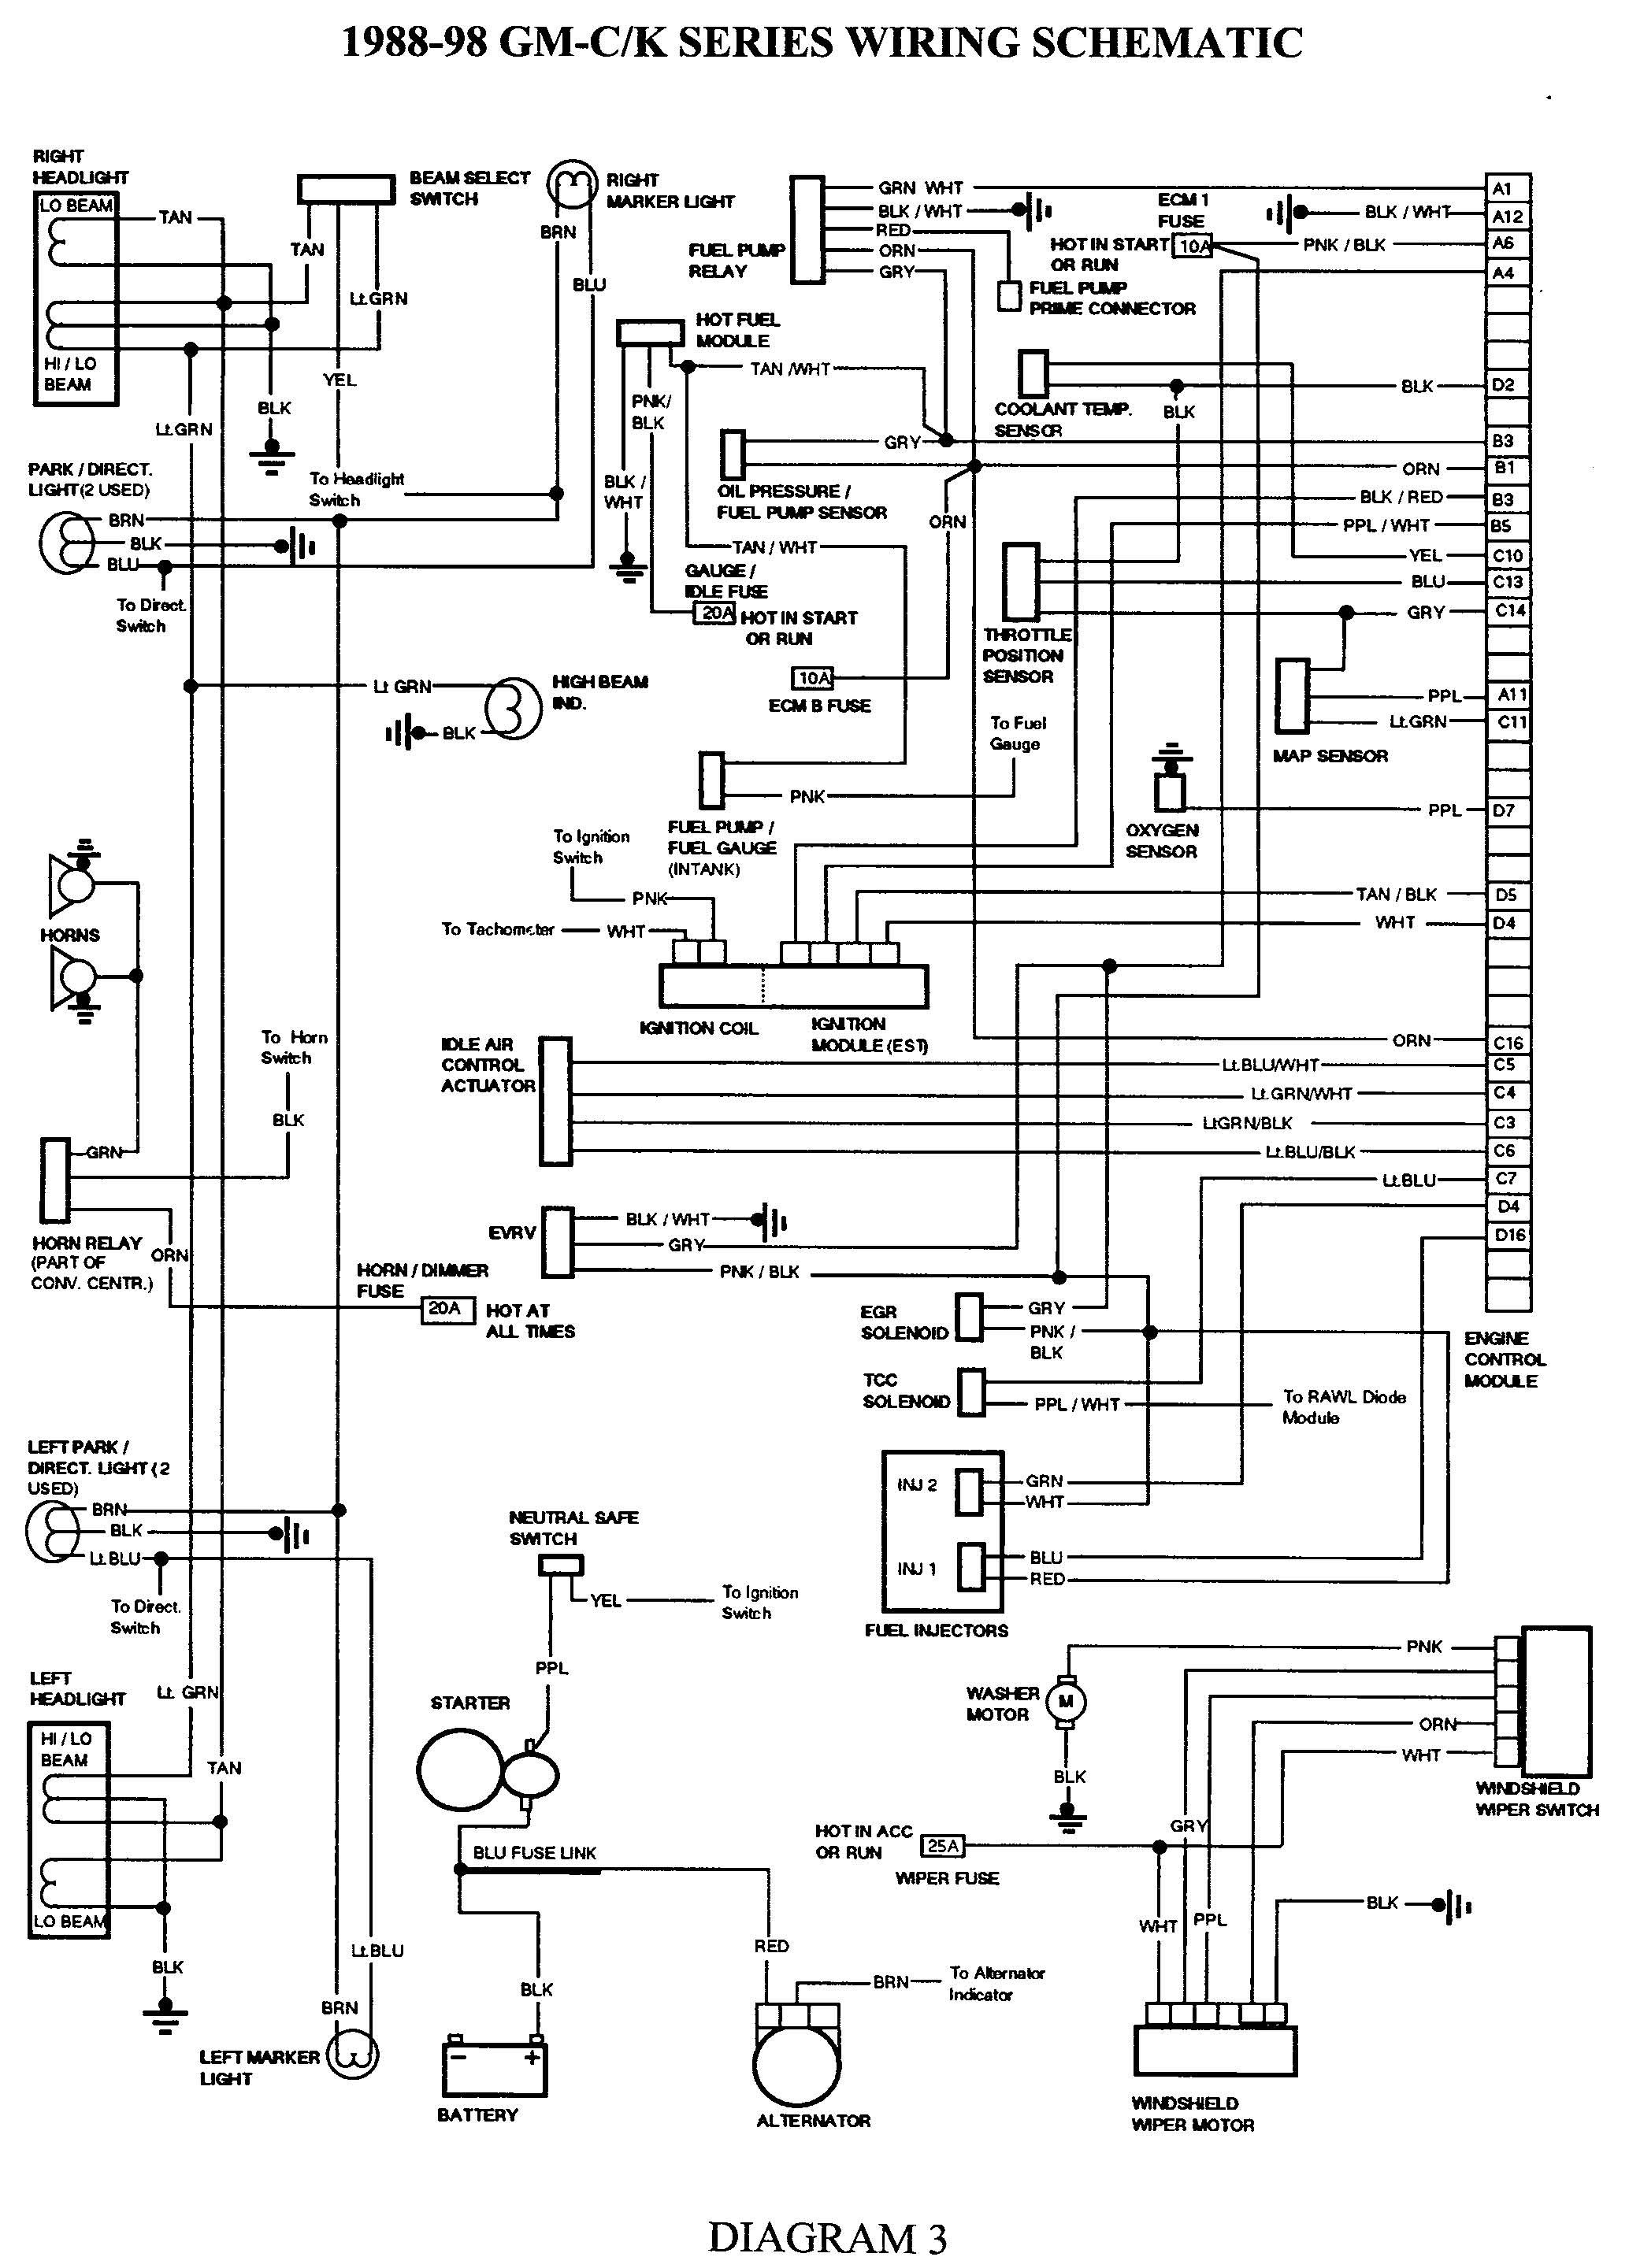 Radio Wiring Diagram For Eclipse on gmc yukon transfer case, honda accord, jeep cherokee ignition, f150 radio, jeep cherokee starter, chevy tahoe, ford explorer, ford ranger, honda civic rev counter,